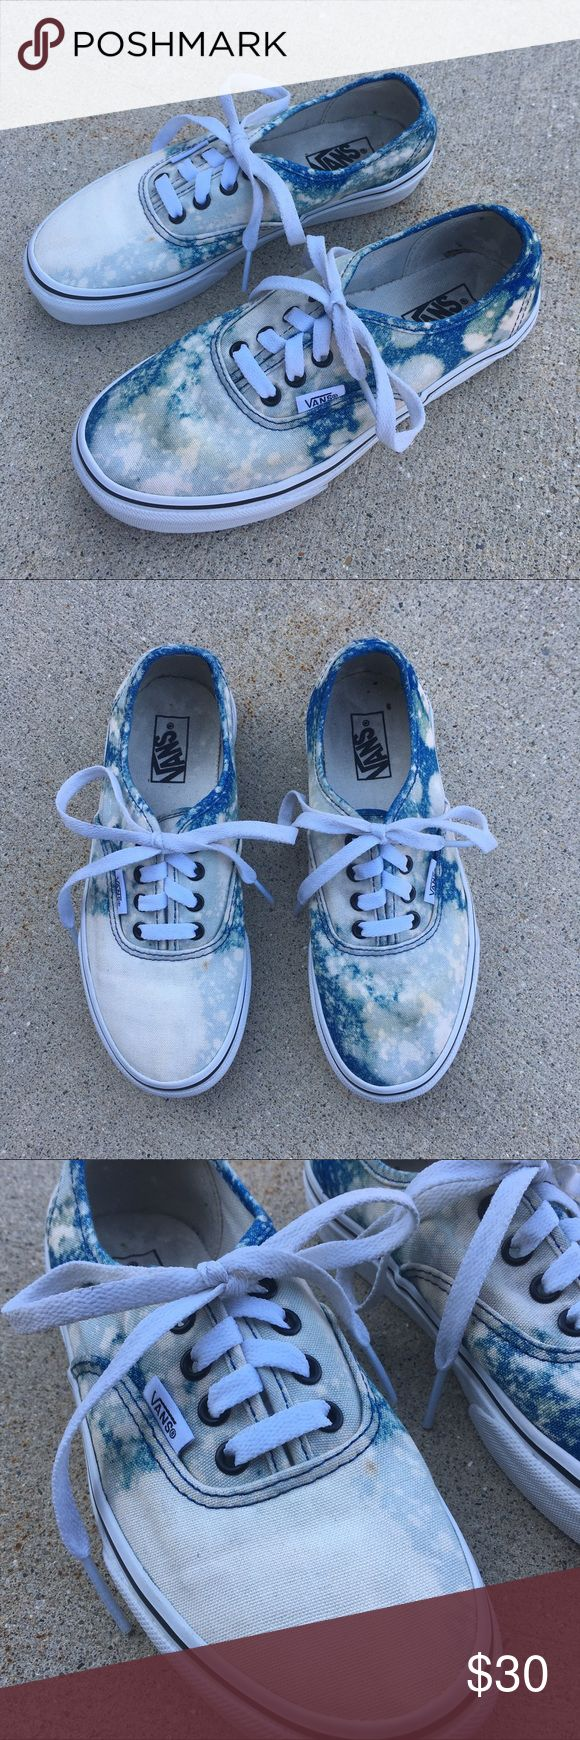 Custom* Acid Wash Vans Custom made Vans shoes. Youth size 2! Worn a few times but in amazing condition. Vans Shoes Sneakers